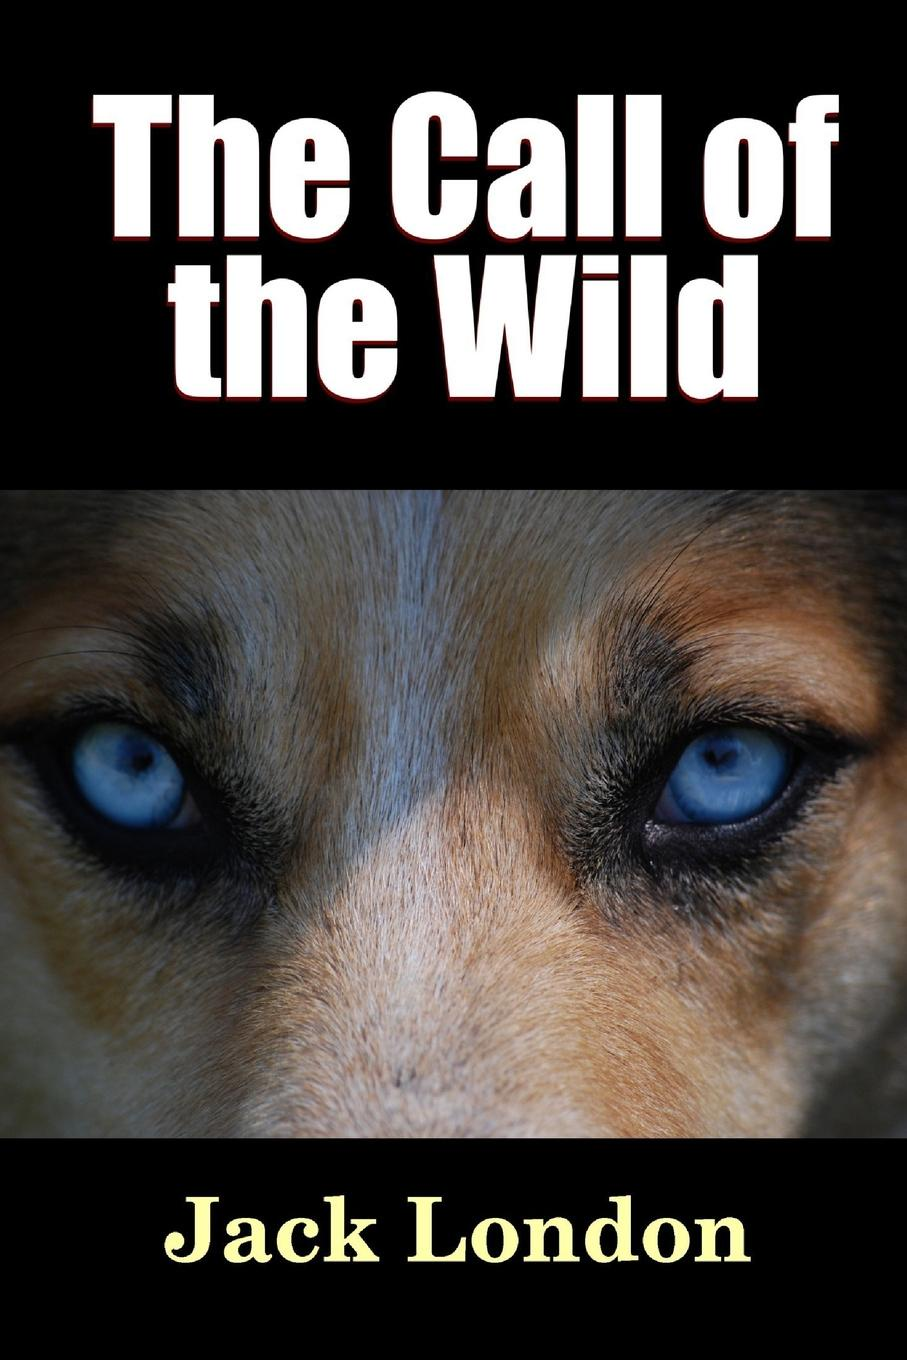 Jack London. The Call of the Wild